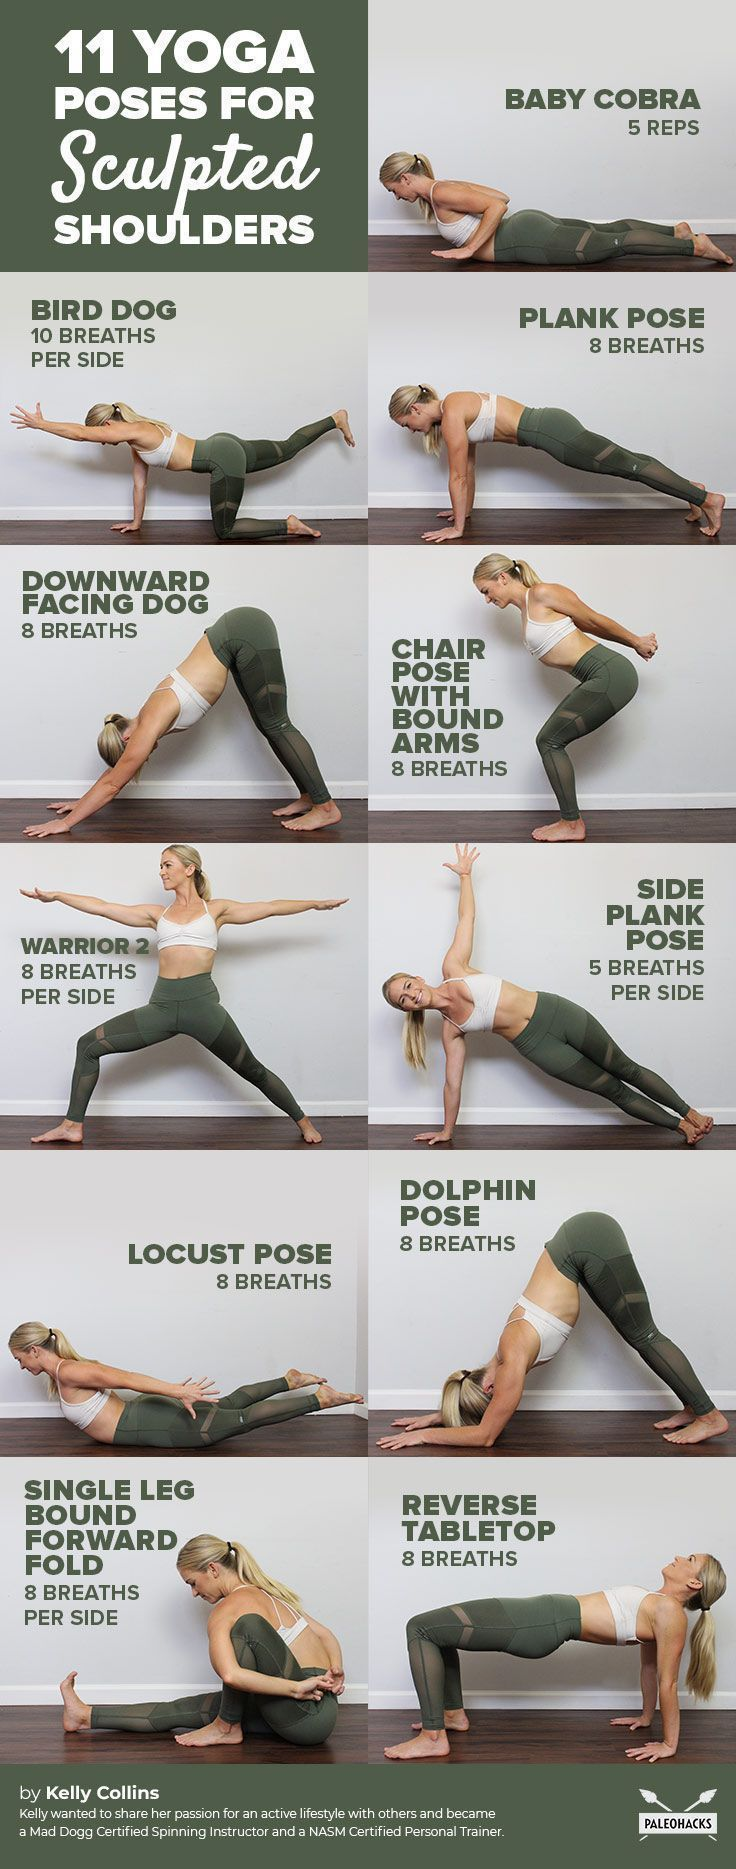 11 Easy Yoga Poses for Sculpted Shoulders & Better Mobility